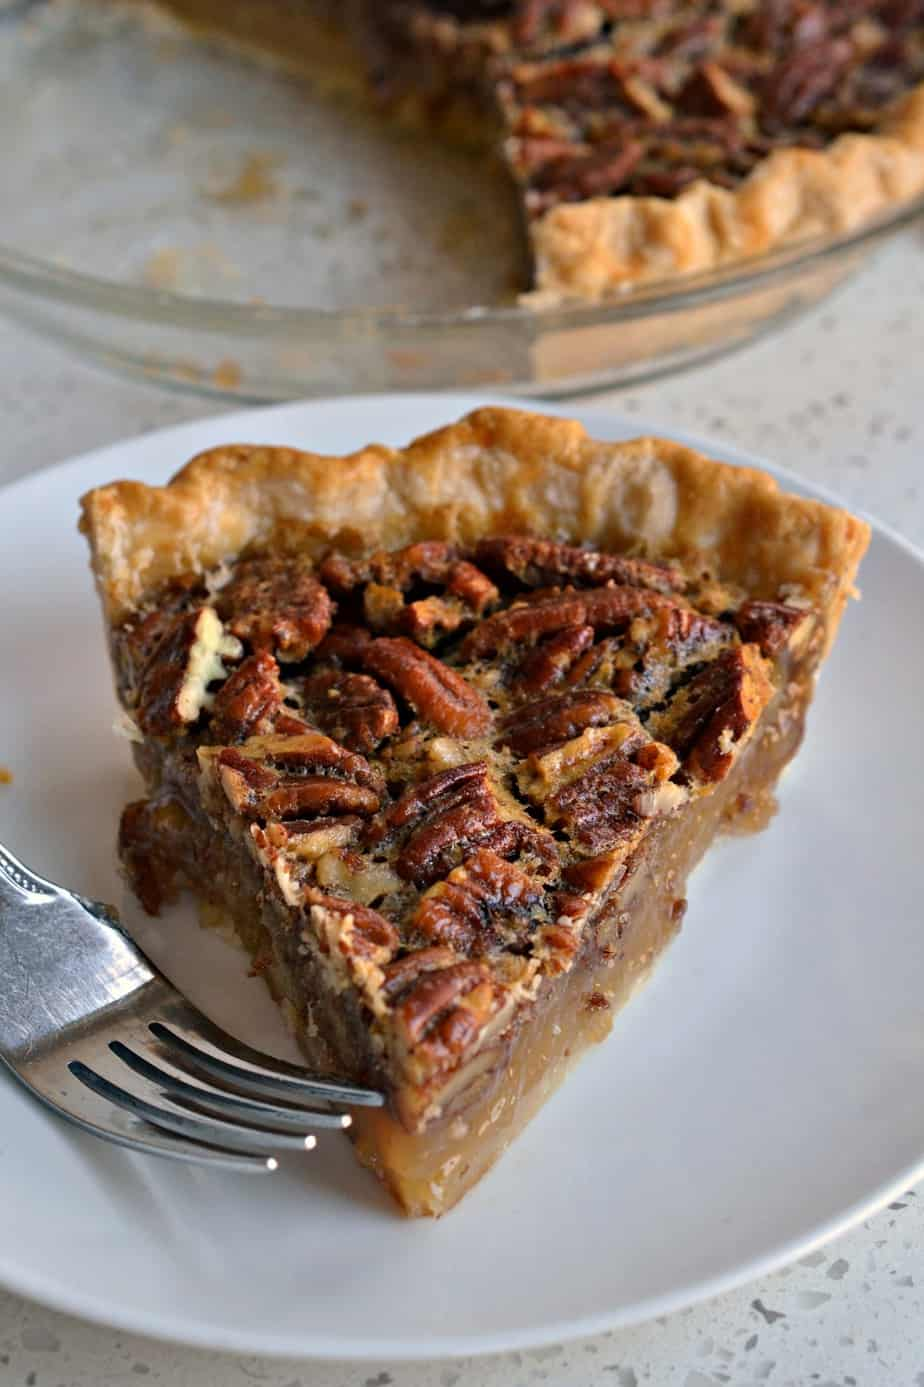 Southern Pecan Pie is a soft buttery mess of pecans nestled in soft sweetness made with eggs, brown sugar and butter.